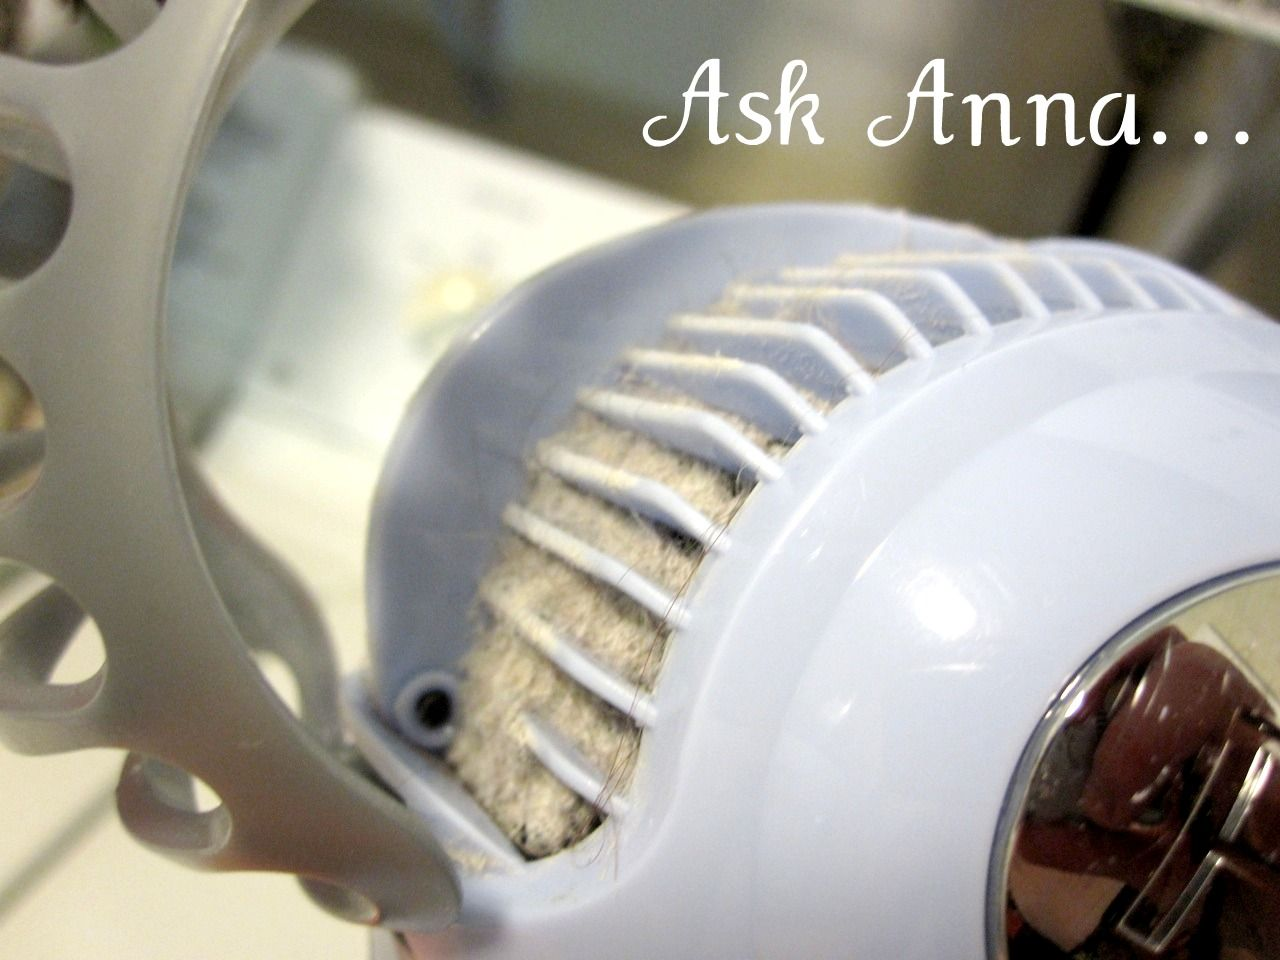 How to Clean your Hair Dryer Ask Anna cleaning tips from the